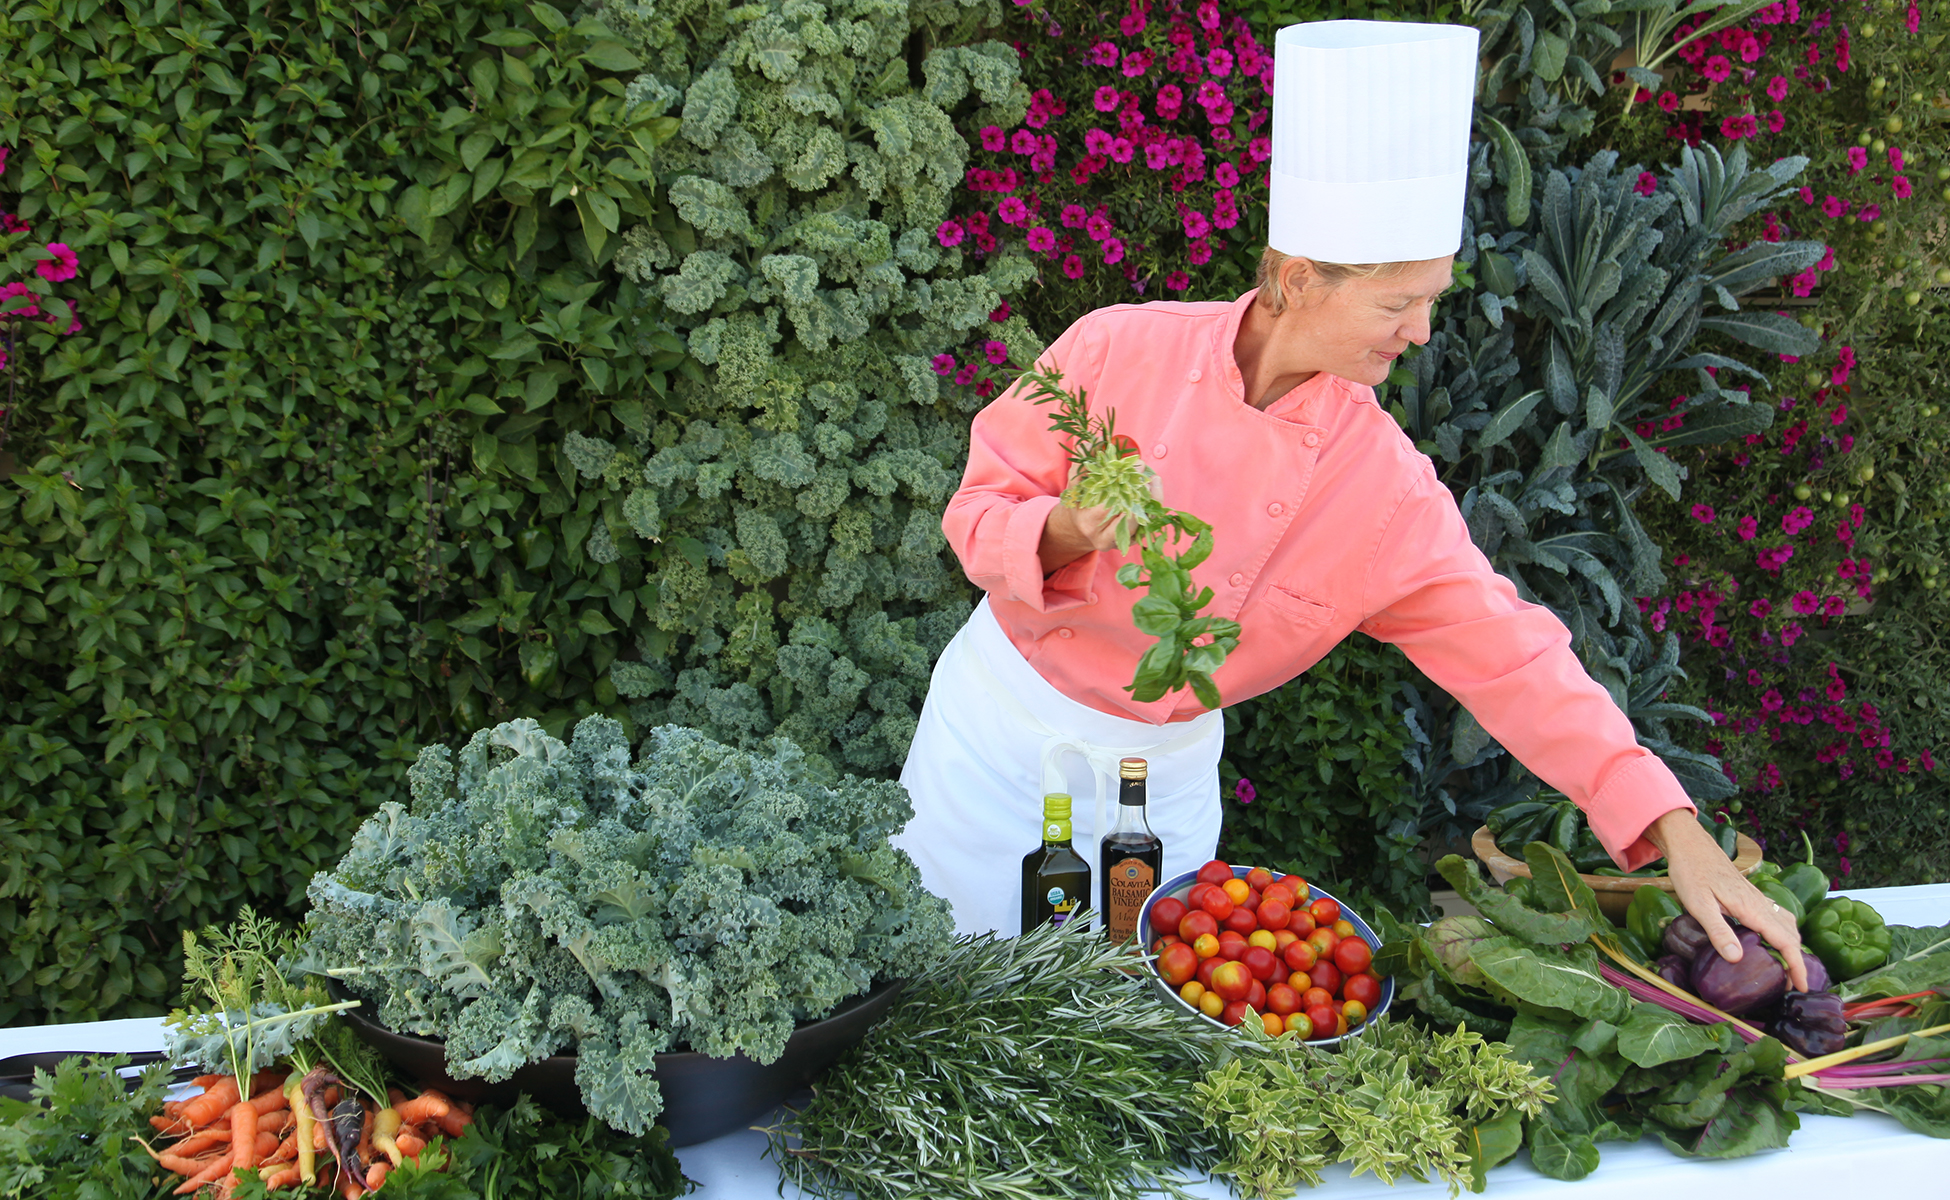 The LiveWall system can support a wide variety of edible produce, including vegetables, greens and herbs.